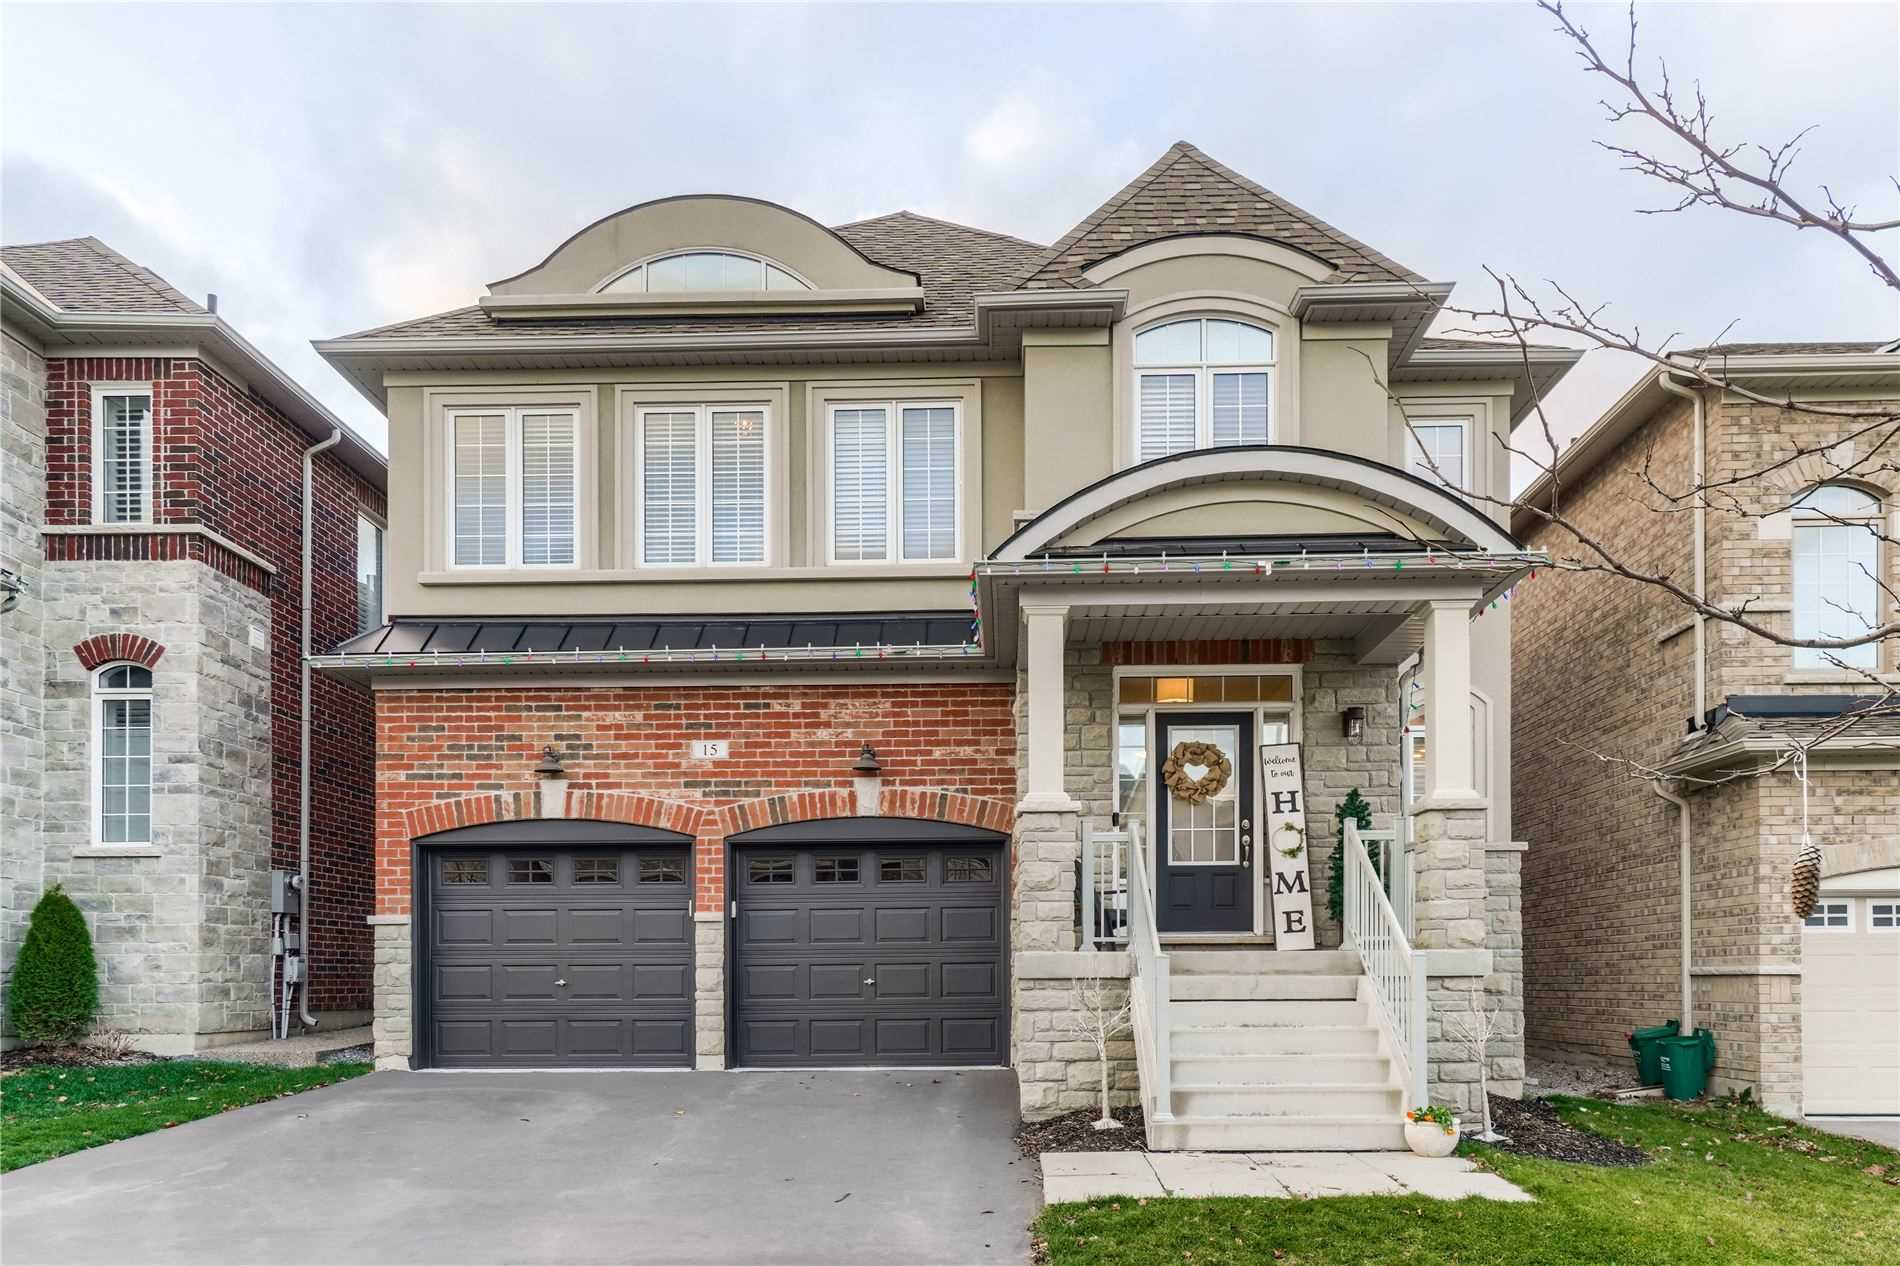 For Sale: 15 Oasis Trail, Halton Hills, ON | 5 Bed, 4 Bath House for $1259000.00. See 40 photos!